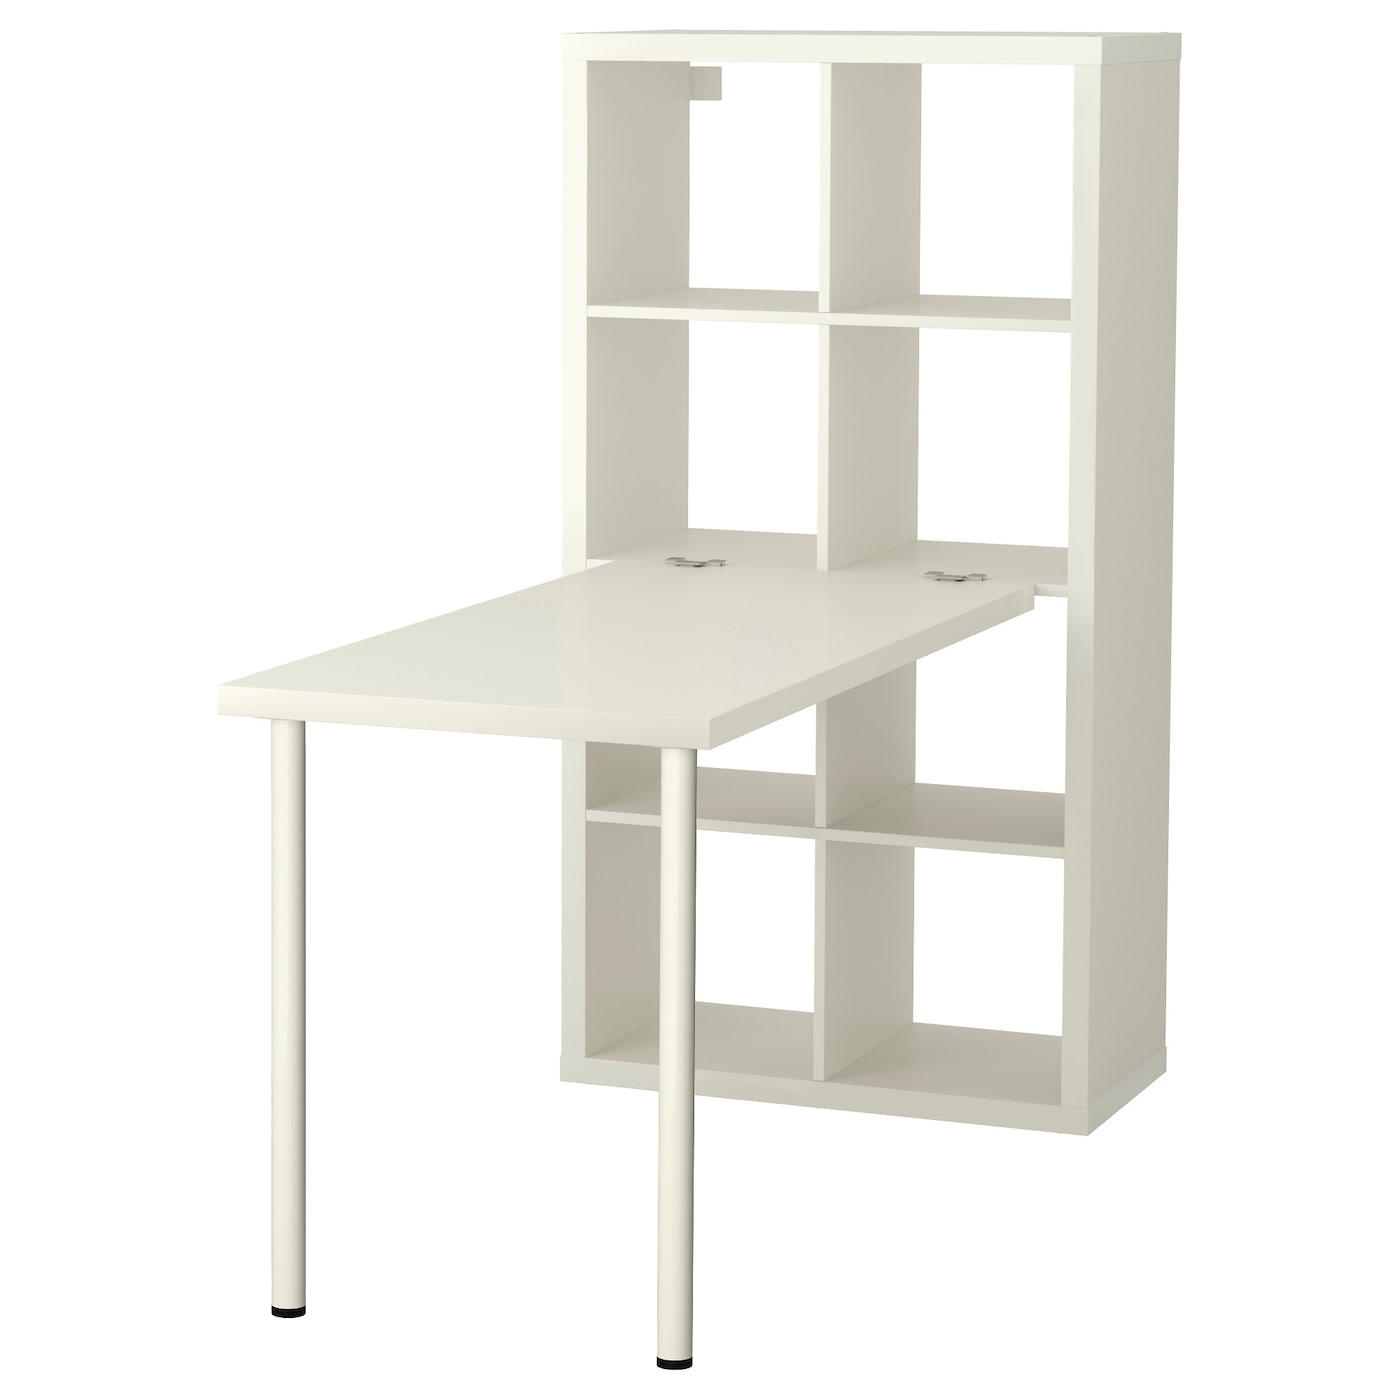 kallax desk combination white 77x147 cm ikea. Black Bedroom Furniture Sets. Home Design Ideas